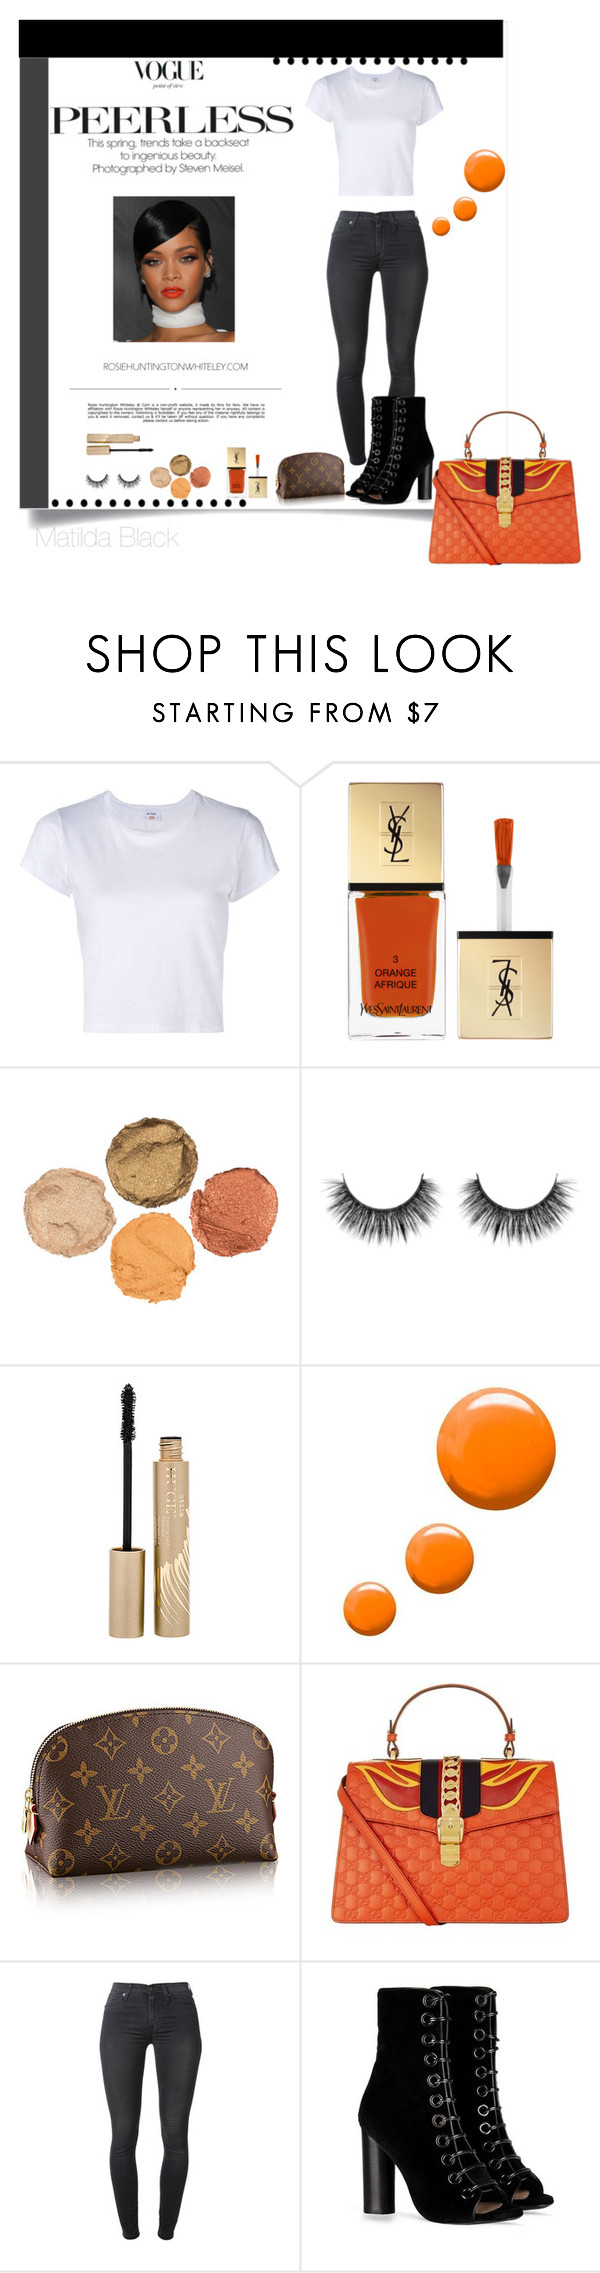 """Untitled #93"" by matildablack on Polyvore featuring RE/DONE, Whiteley, Yves Saint Laurent, Stila, Topshop, Gucci, 7 For All Mankind, Barbara Bui, StreetStyle and CasualChic"